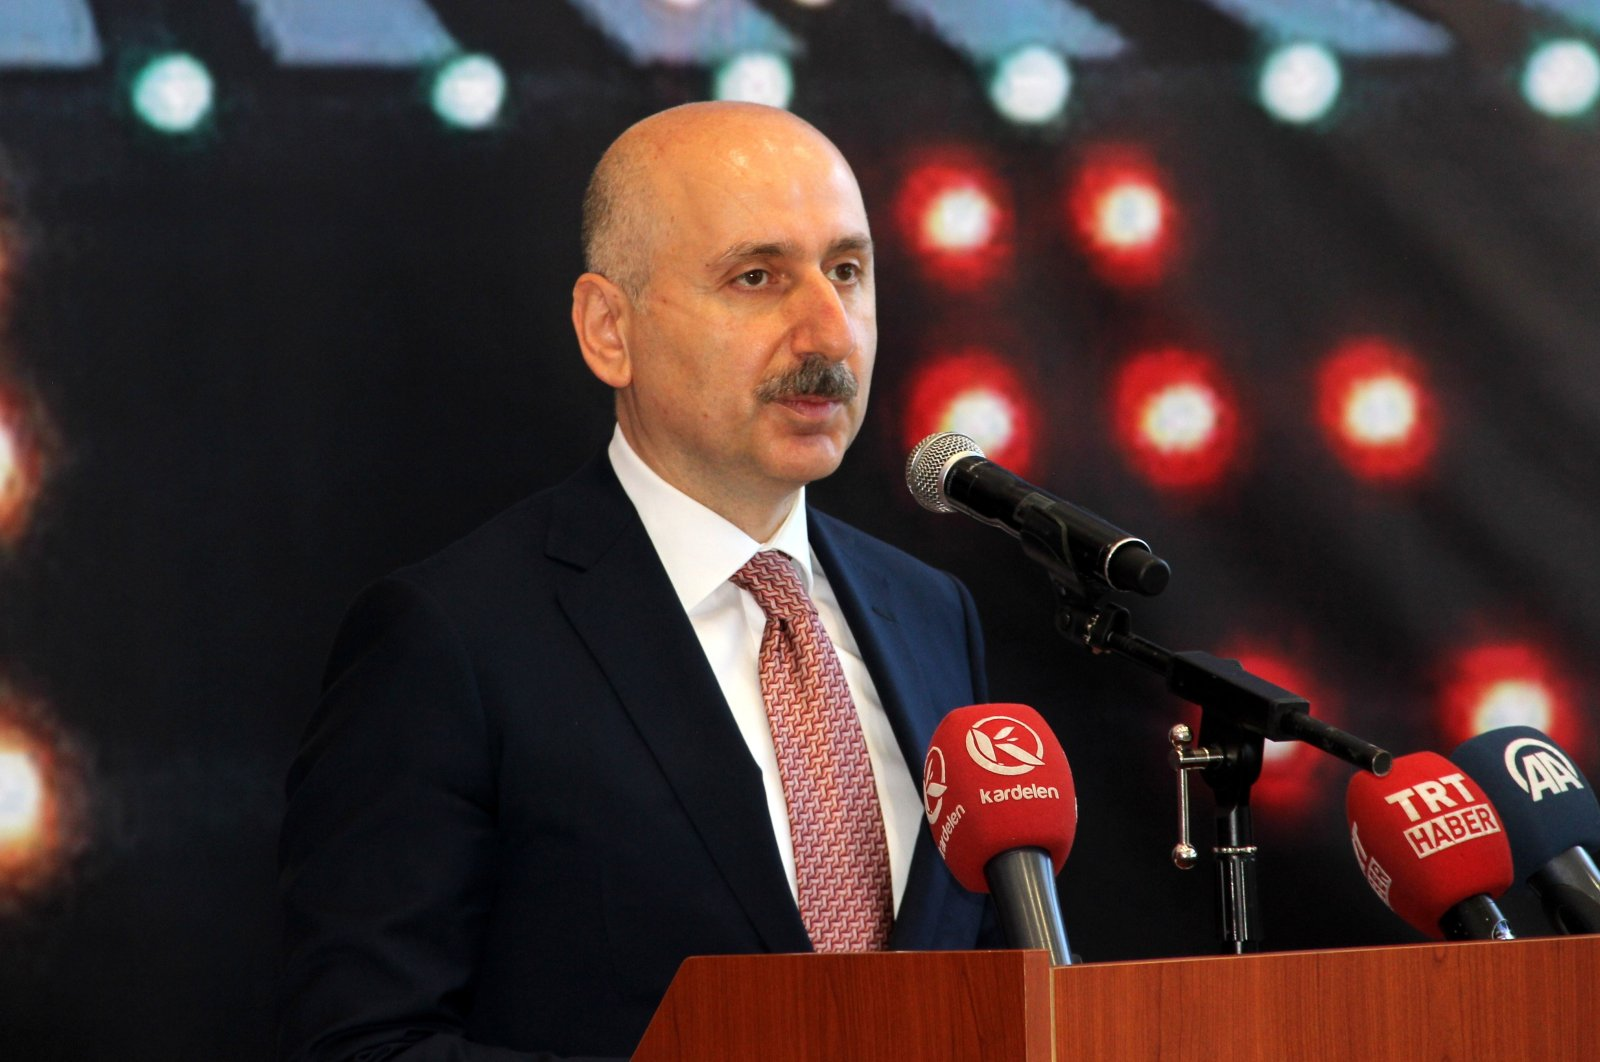 Transportation and Infrastructure Minister Adil Karaismailoğlu speaks during the opening ceremony for a new runway at Erzurum Airport in Turkey's eastern Erzurum province, July 30, 2020. (IHA Photo)